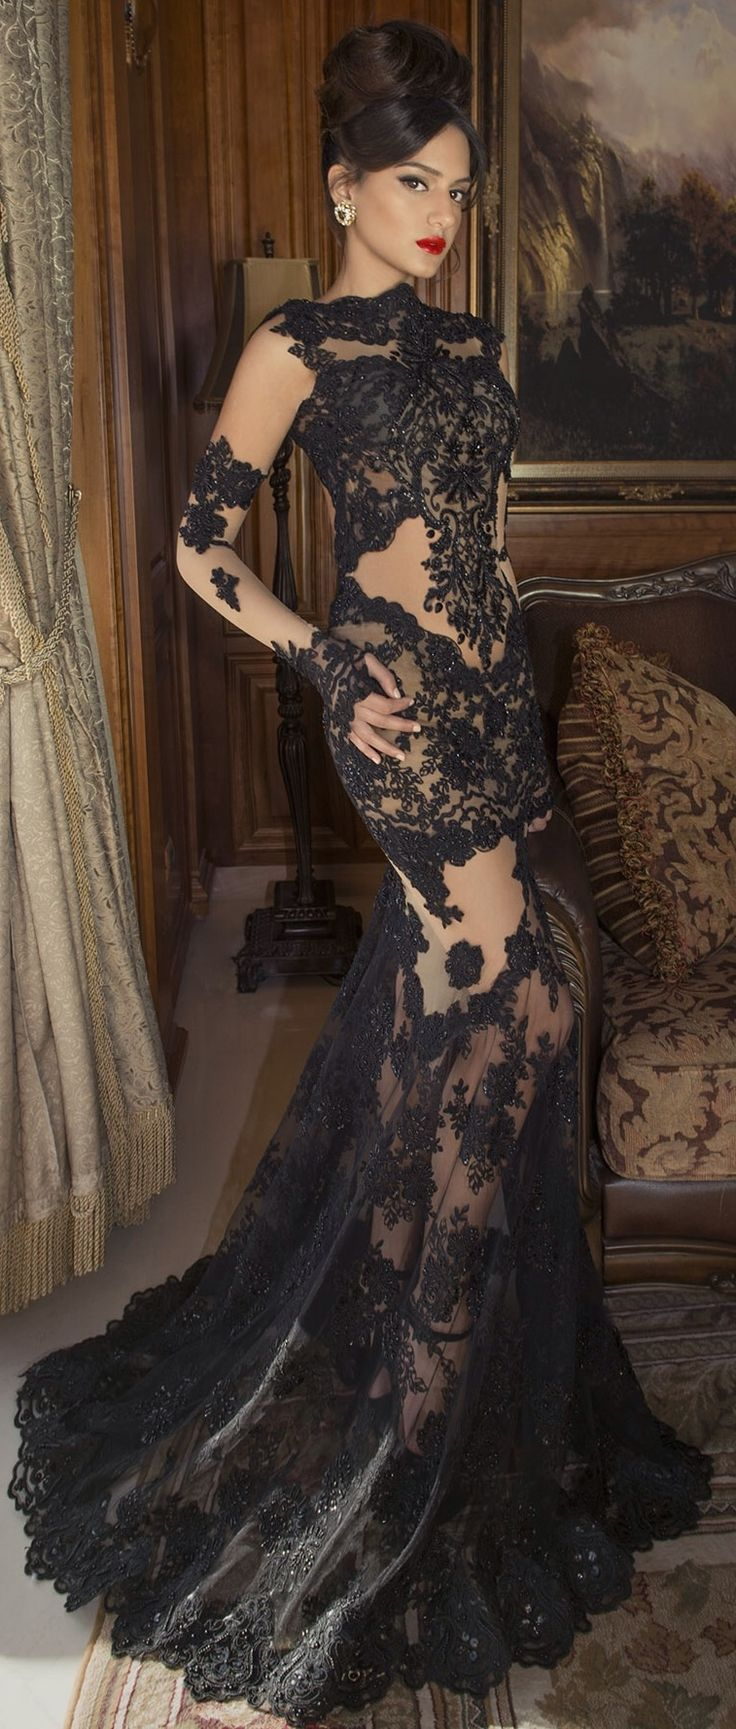 Women's fashion | Evening gown